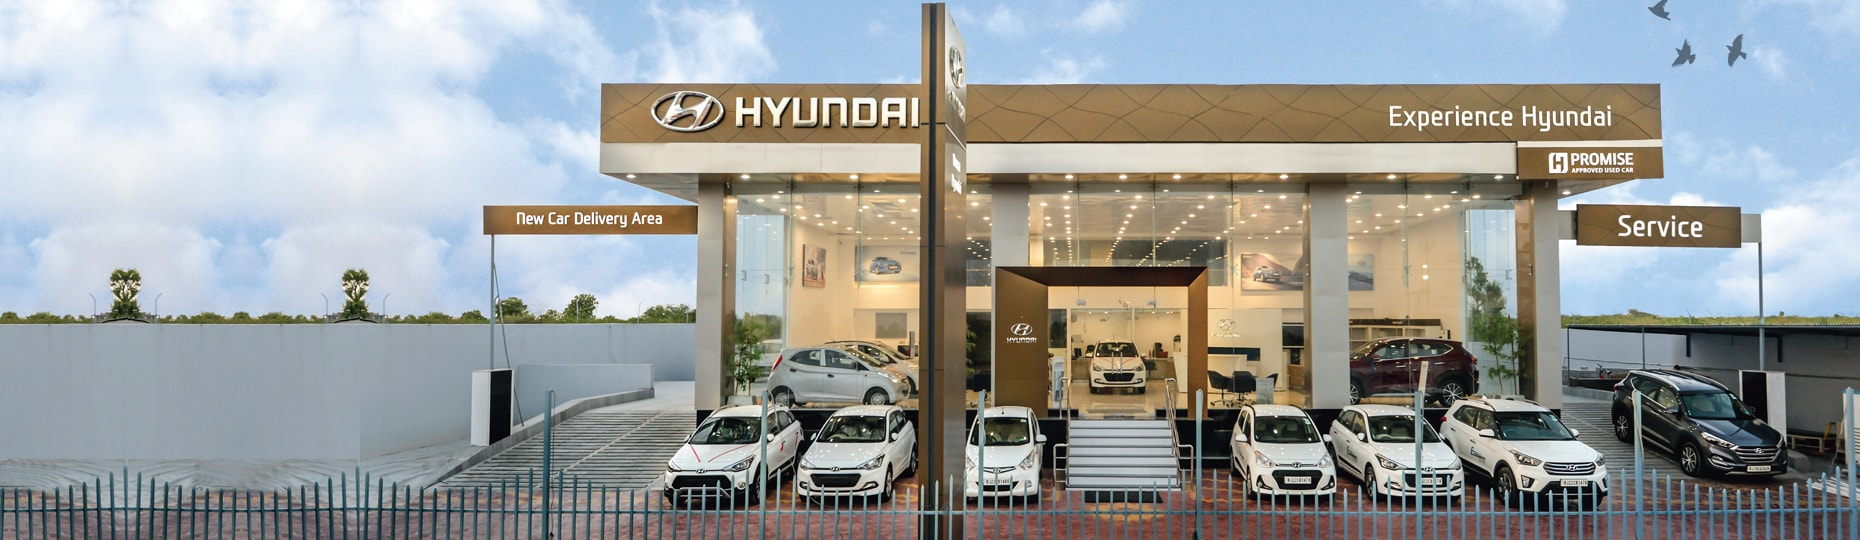 Hyundai new car Delivery area